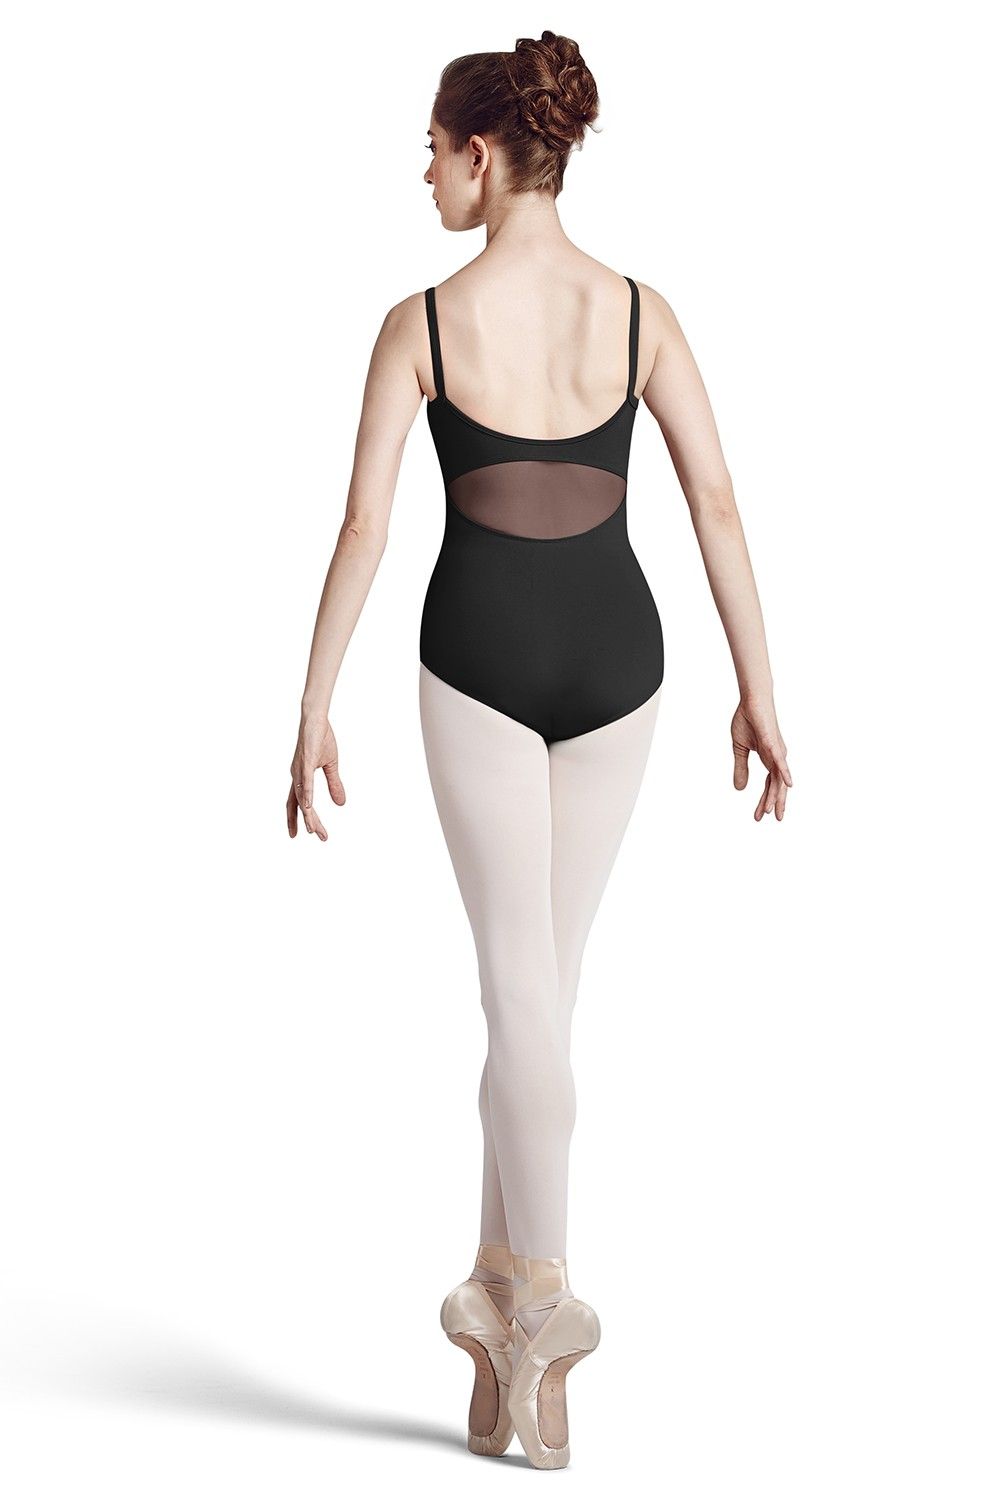 Alecta Women's Dance Leotards